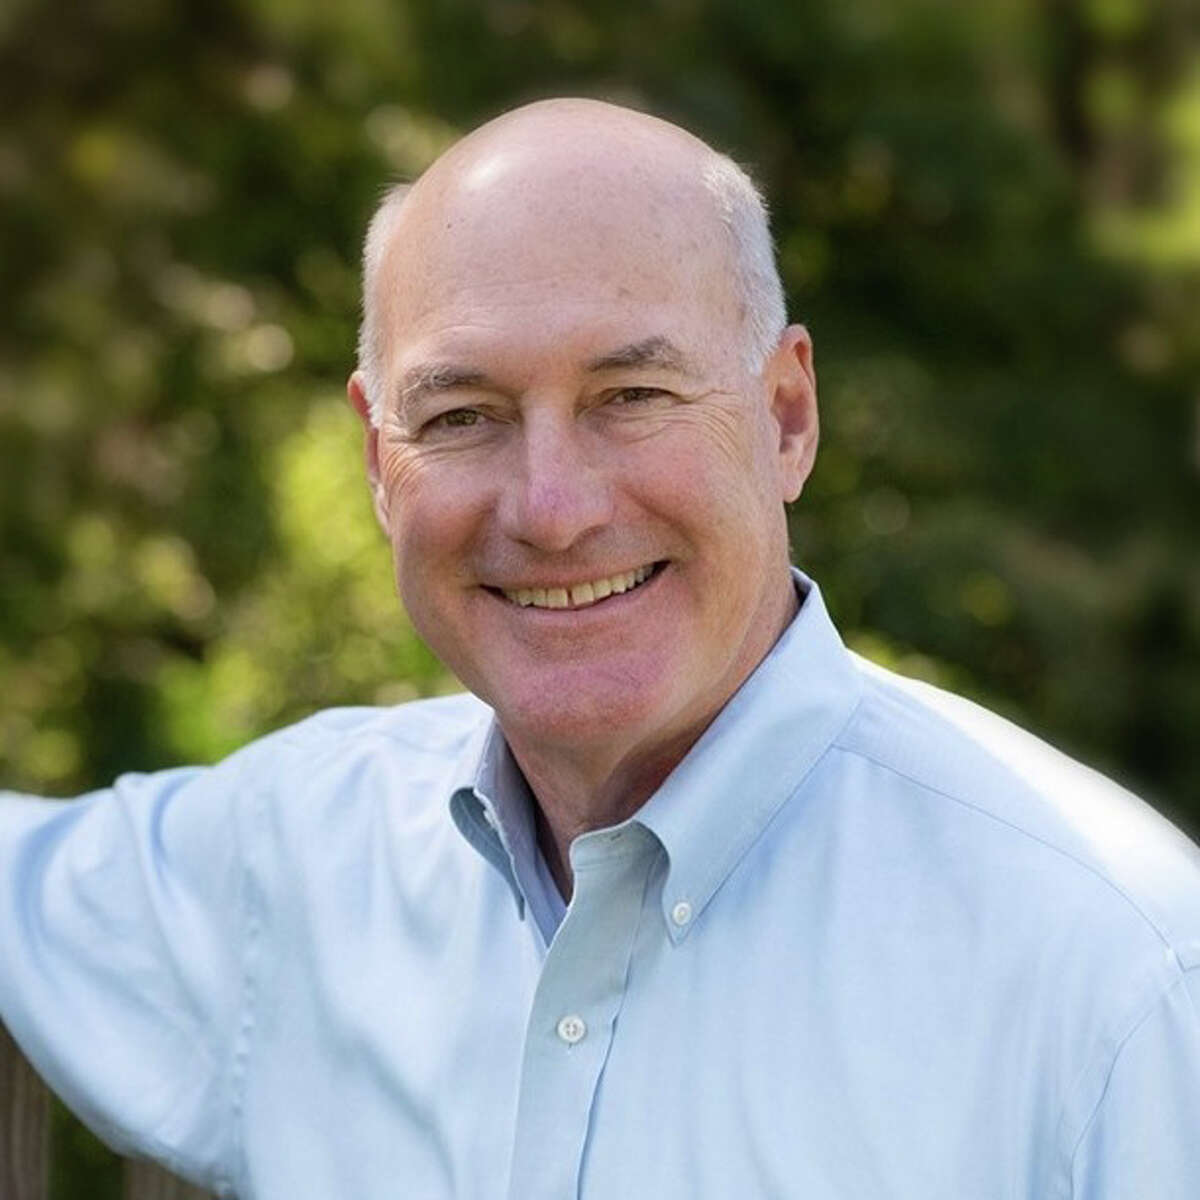 John Lesinski is running for the Democratic nomination in Virginia's 5th District.